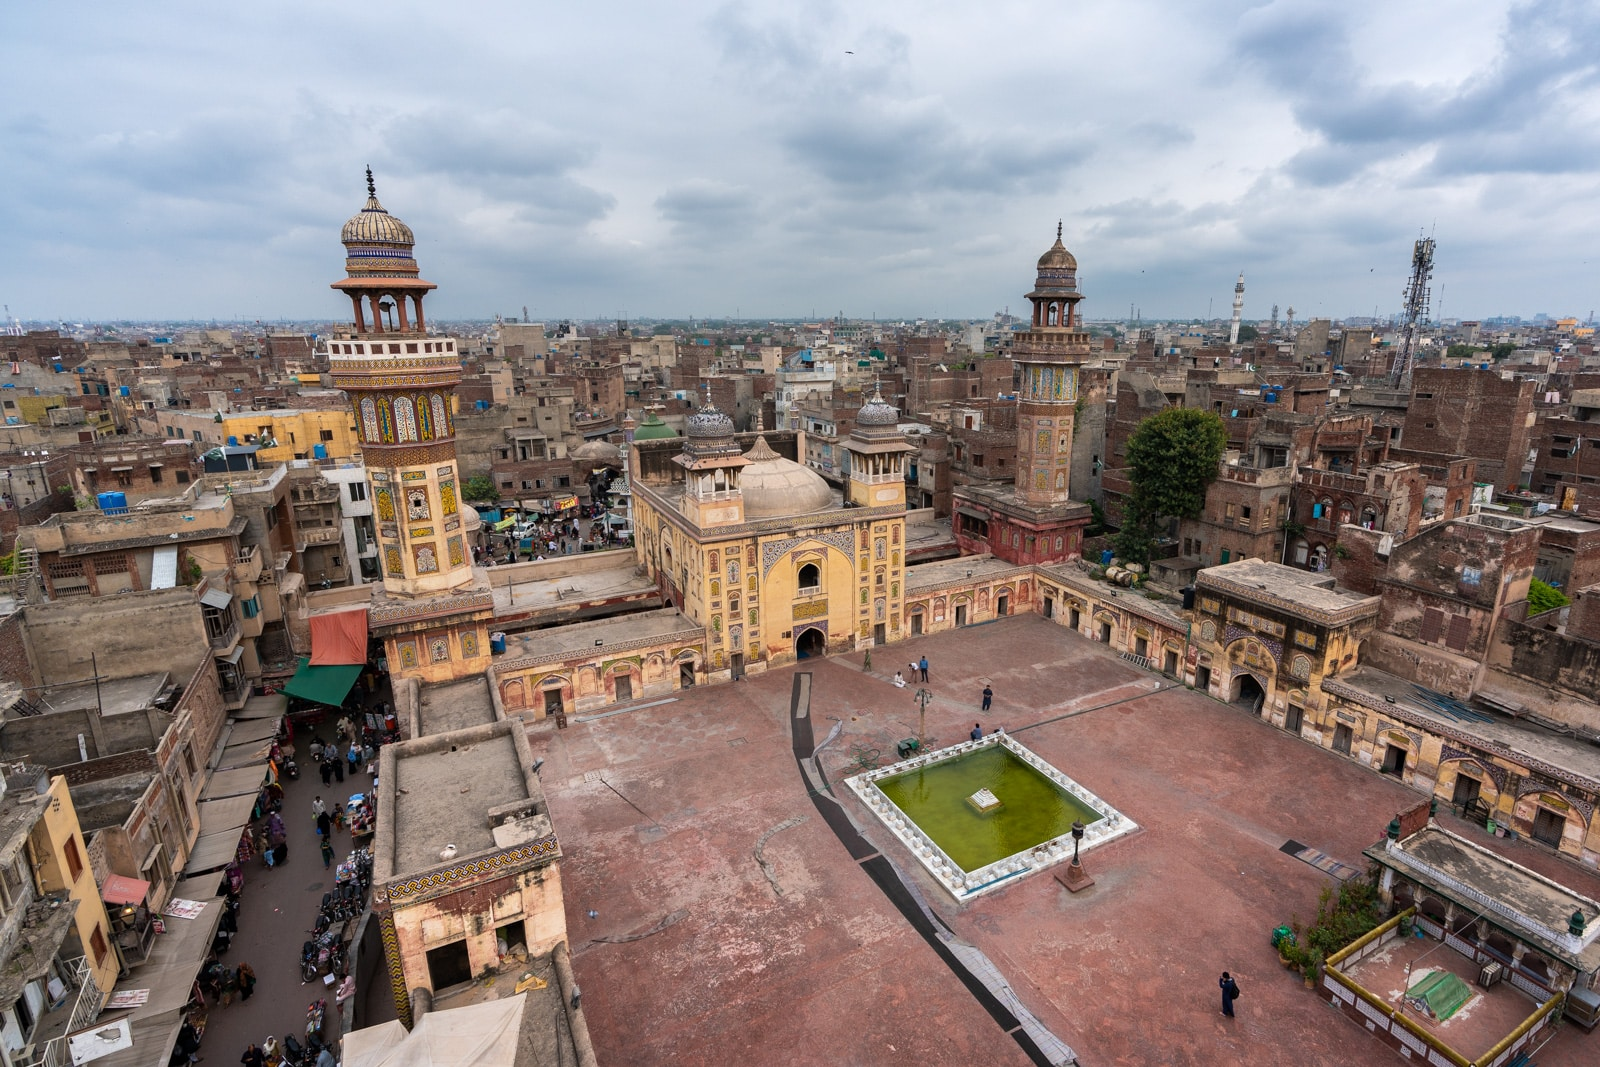 Unique things to do in Lahore, Pakistan - View of Wazir Khan mosque from above in the minaret